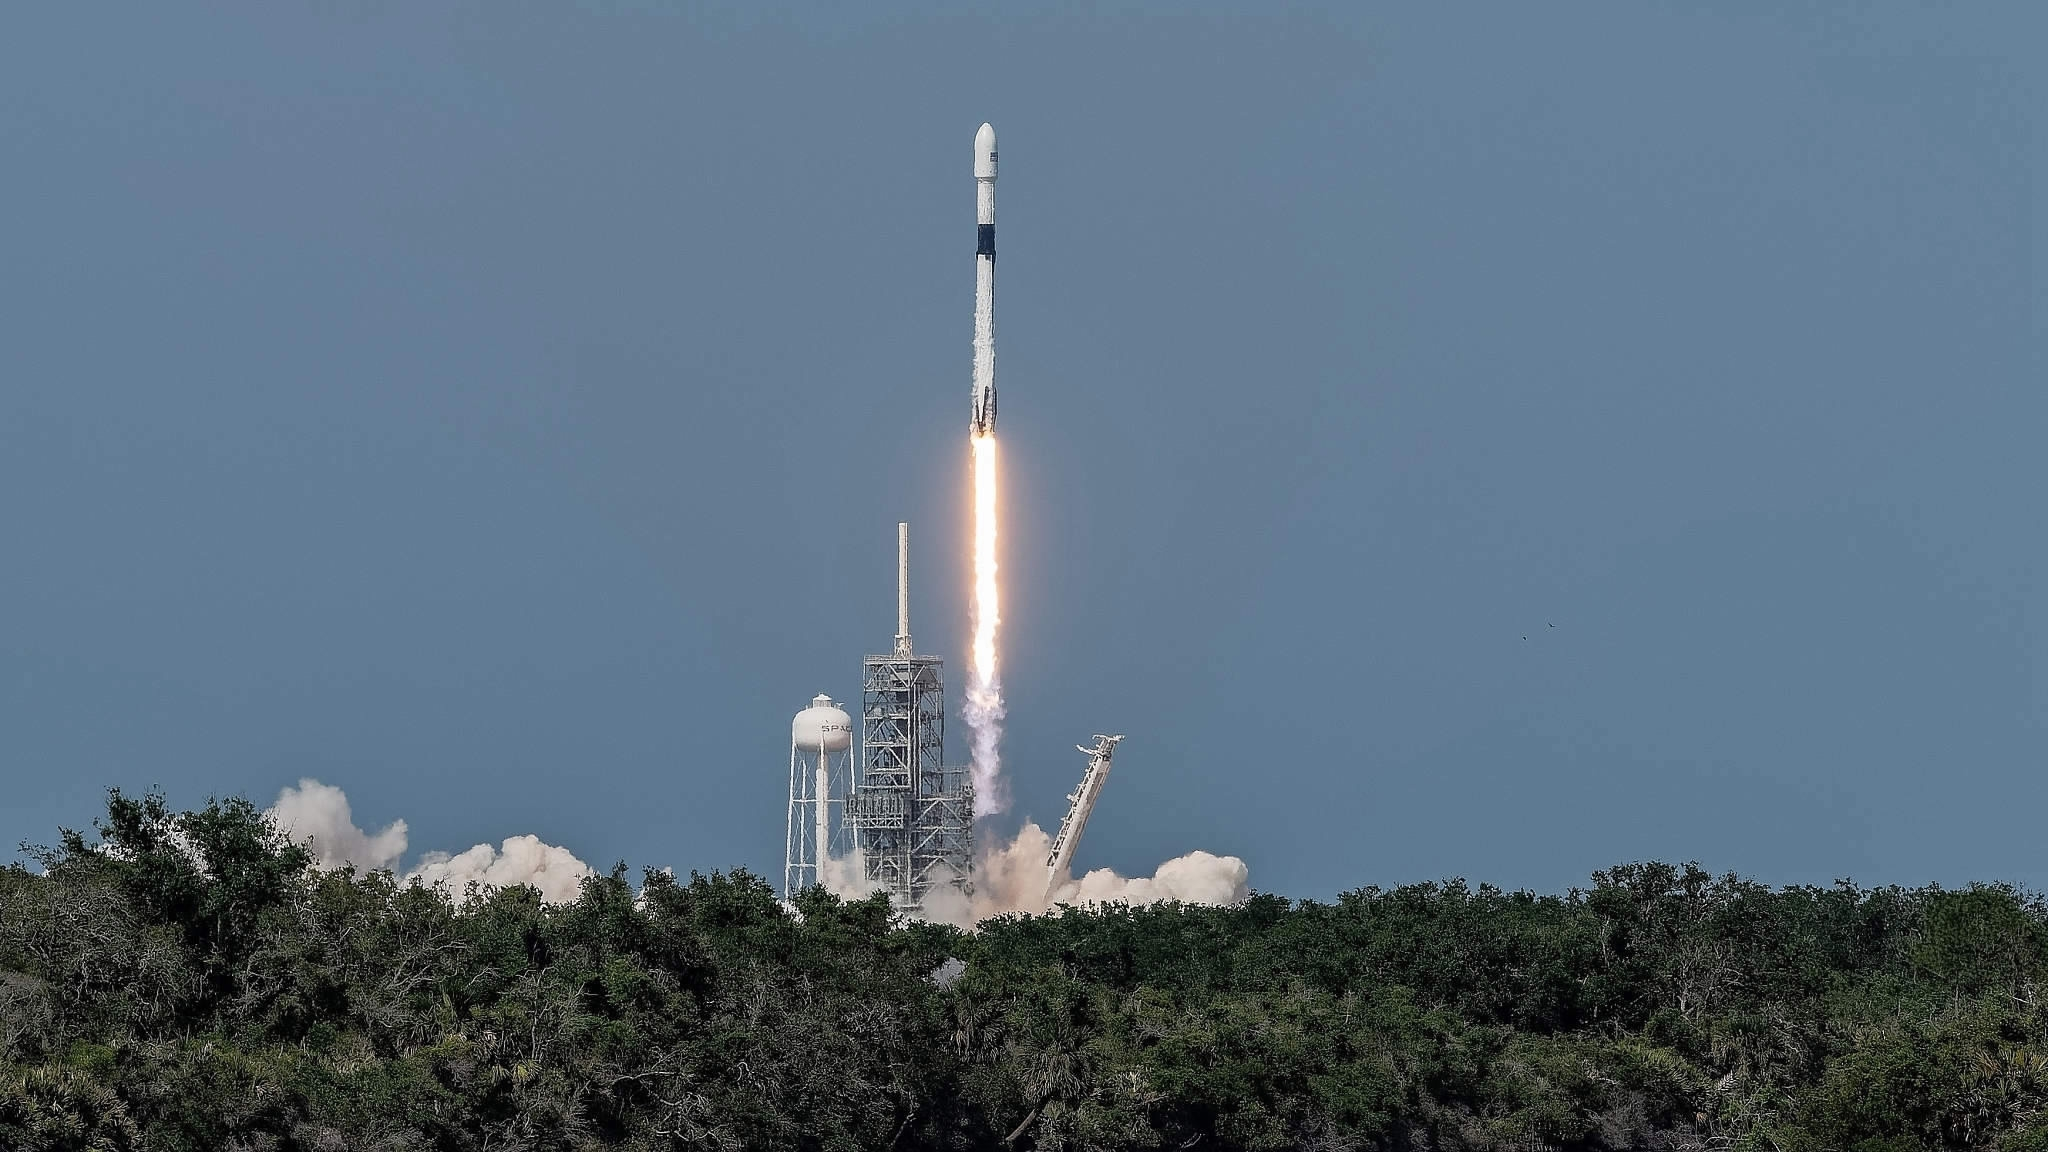 spacex may launch - HD2048×1152